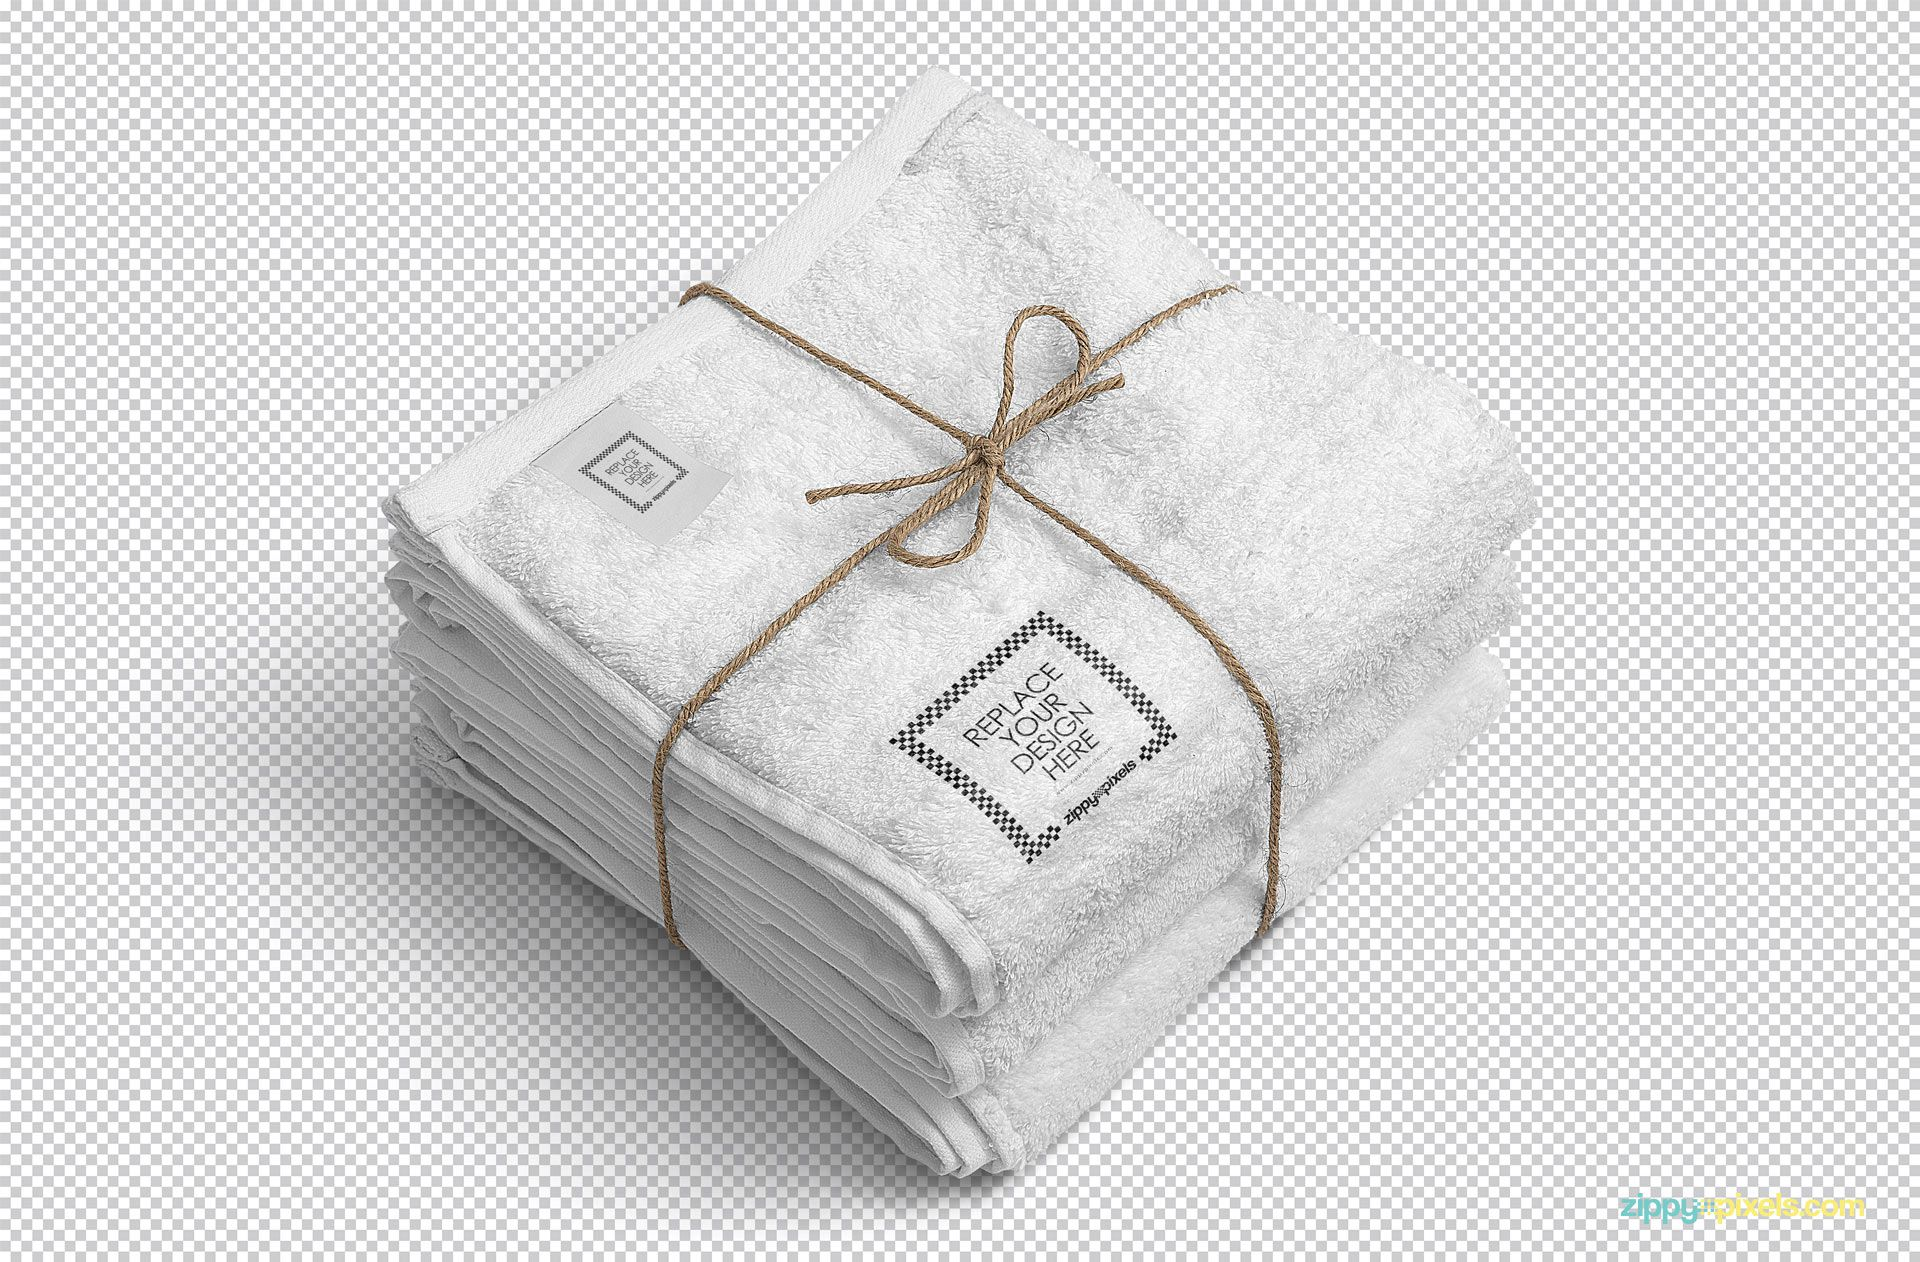 Editable white towel mockup.